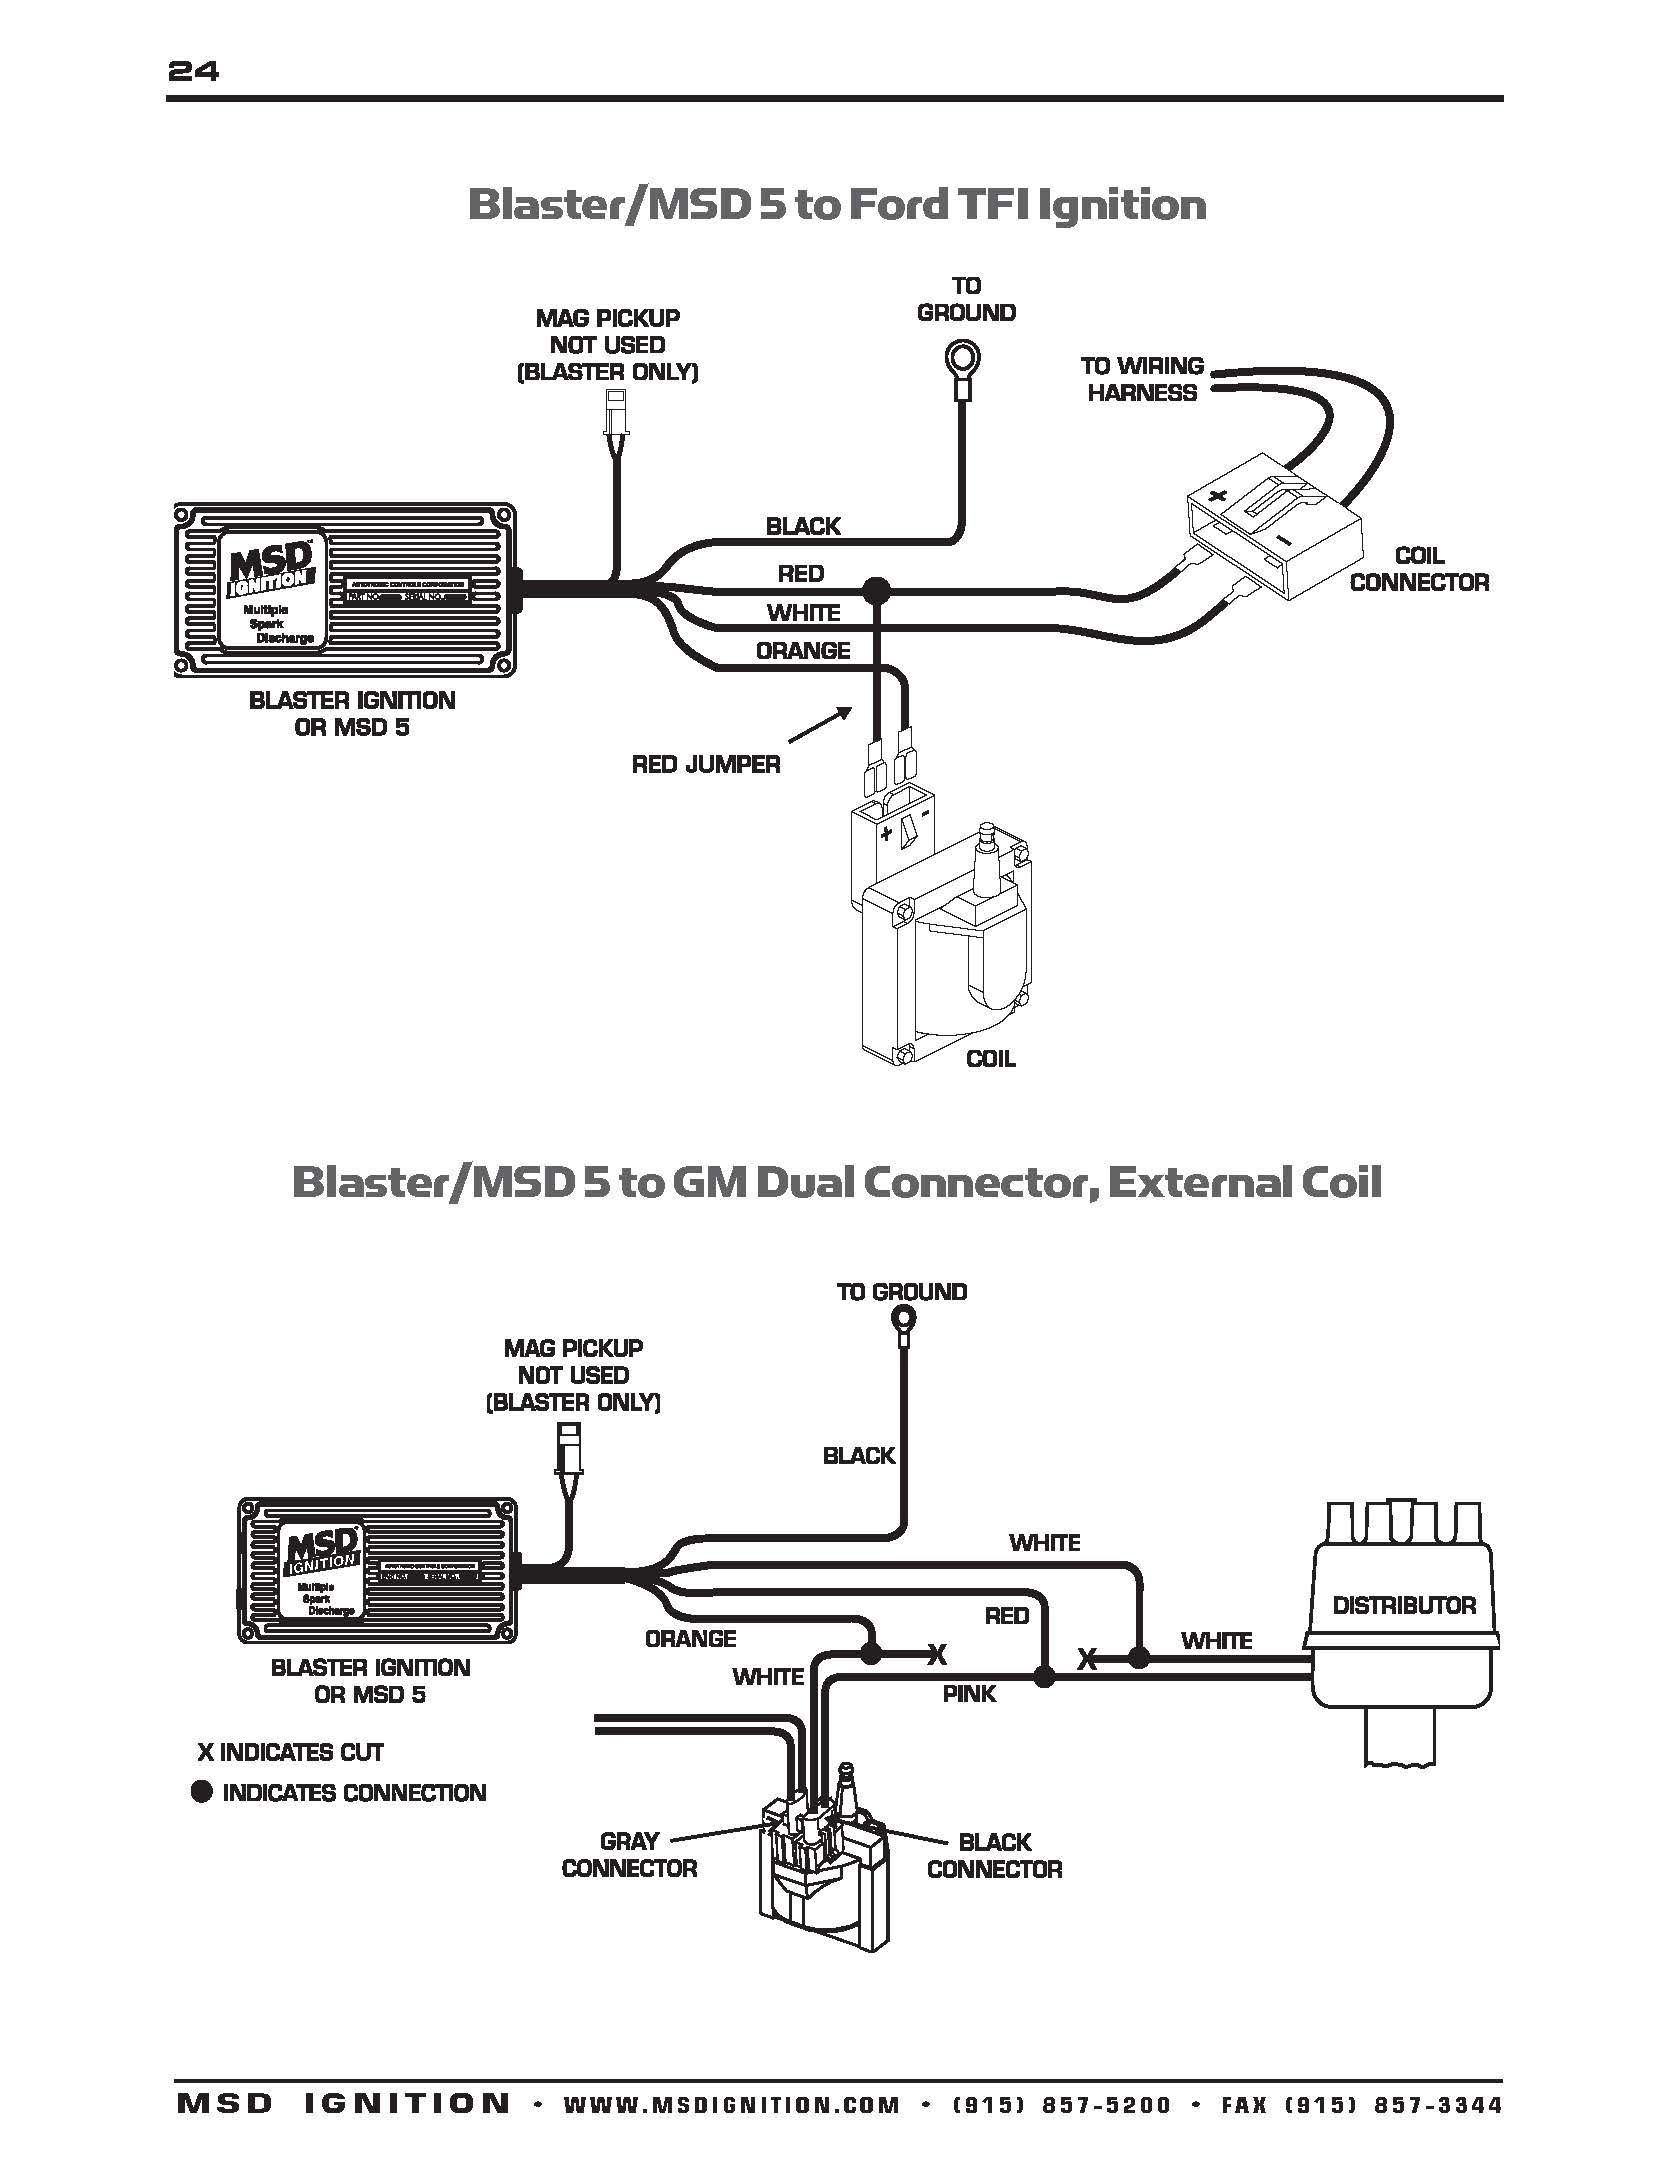 Chevy Hei Wiring 2Wire System - Wiring Diagram Data - Chevy Hei Distributor Wiring Diagram